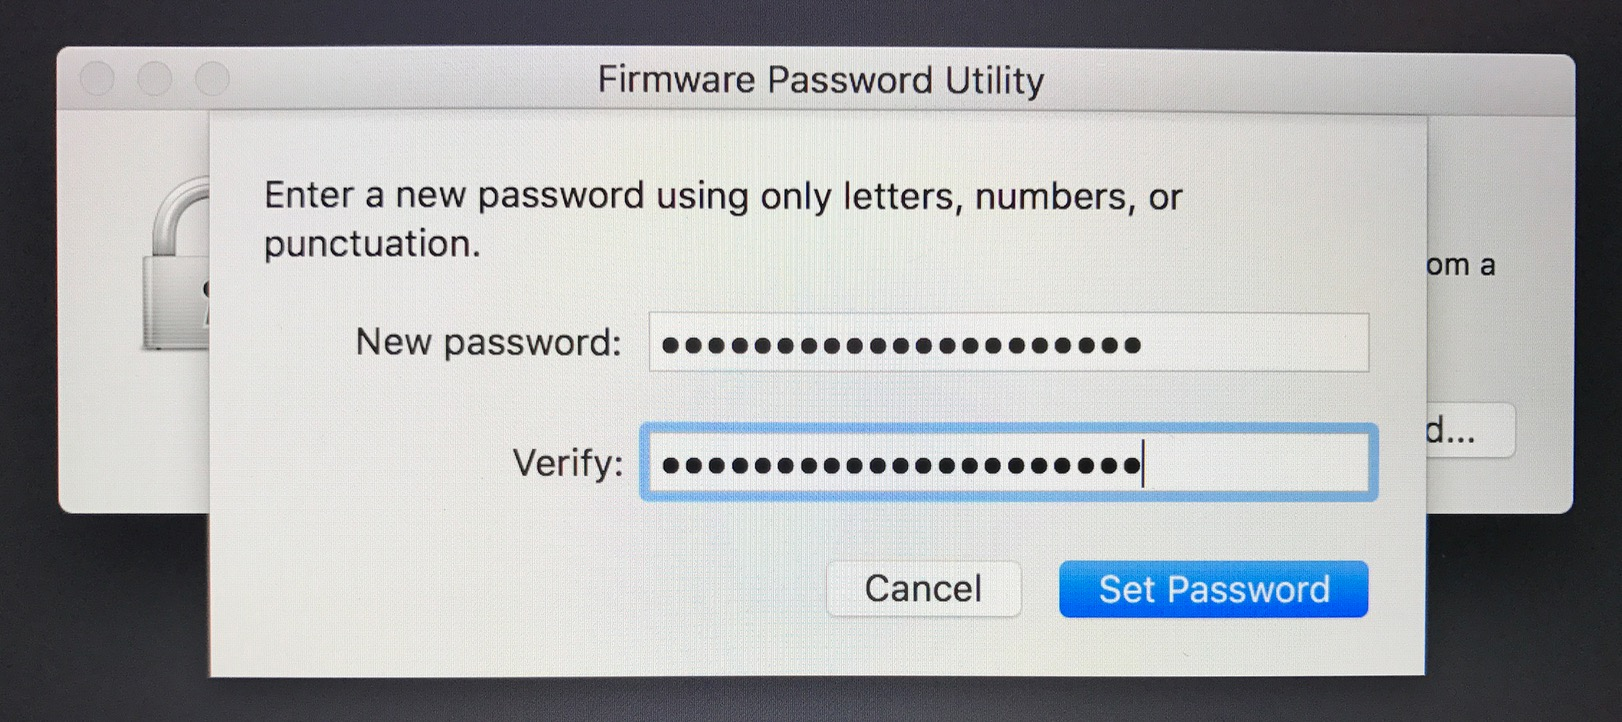 The Mac Firmware Password UtilityEnter Password makes you enter a new password